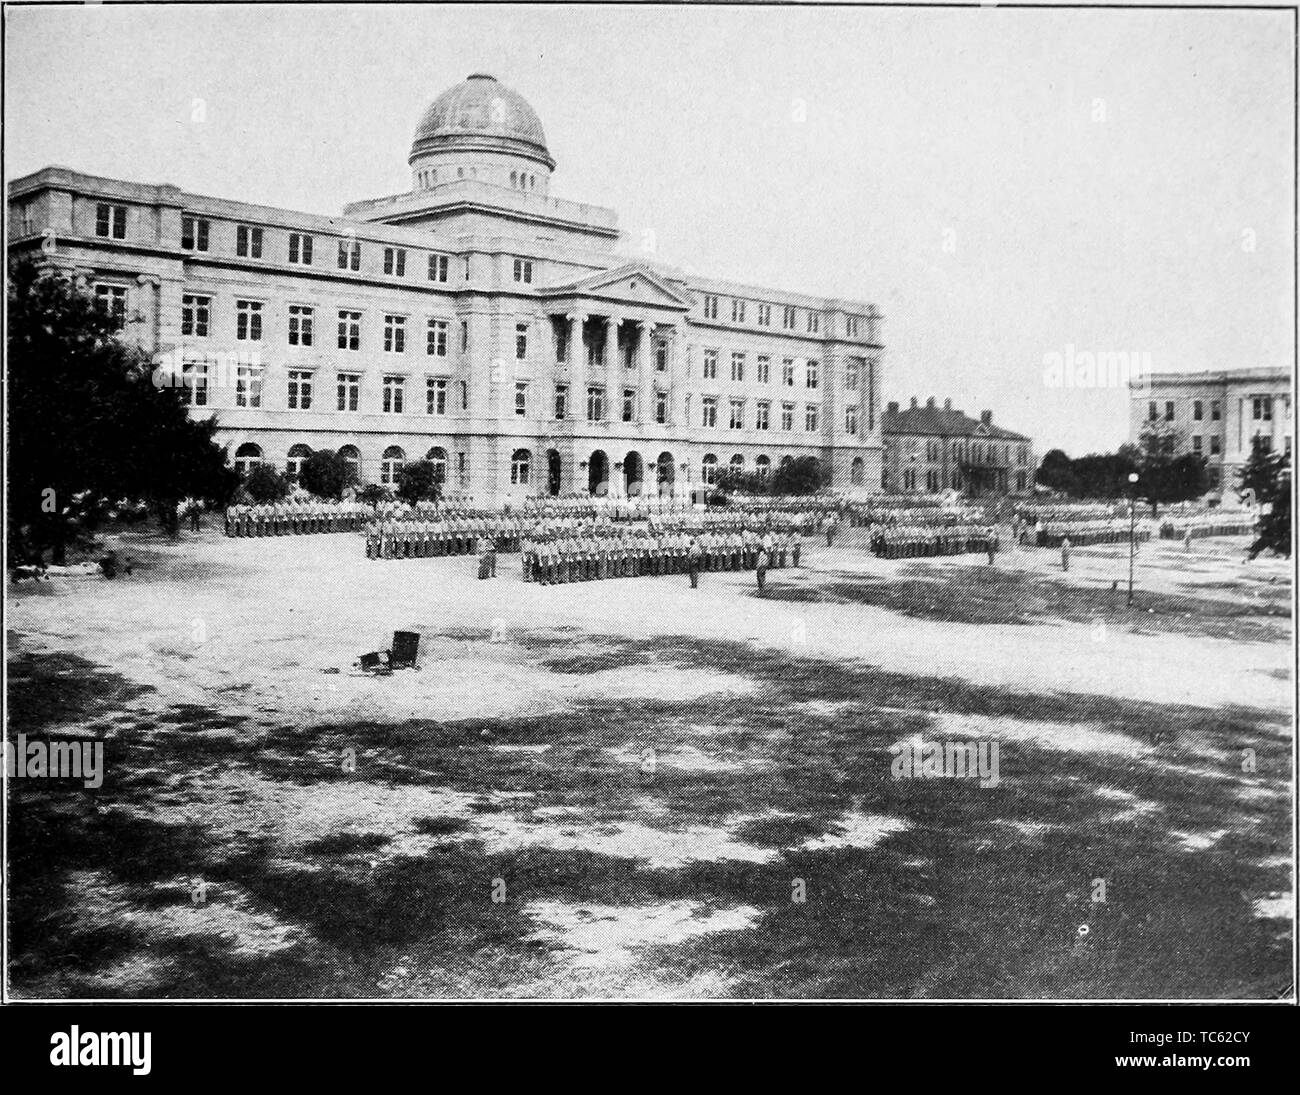 Photograph of the main building and cadet corps of Agricultural and Mechanical College, College Station, Texas, from the book 'Book of Texas' by Harry Yandell Benedict and John A. Lomax, 1916. Courtesy Internet Archive. () - Stock Image